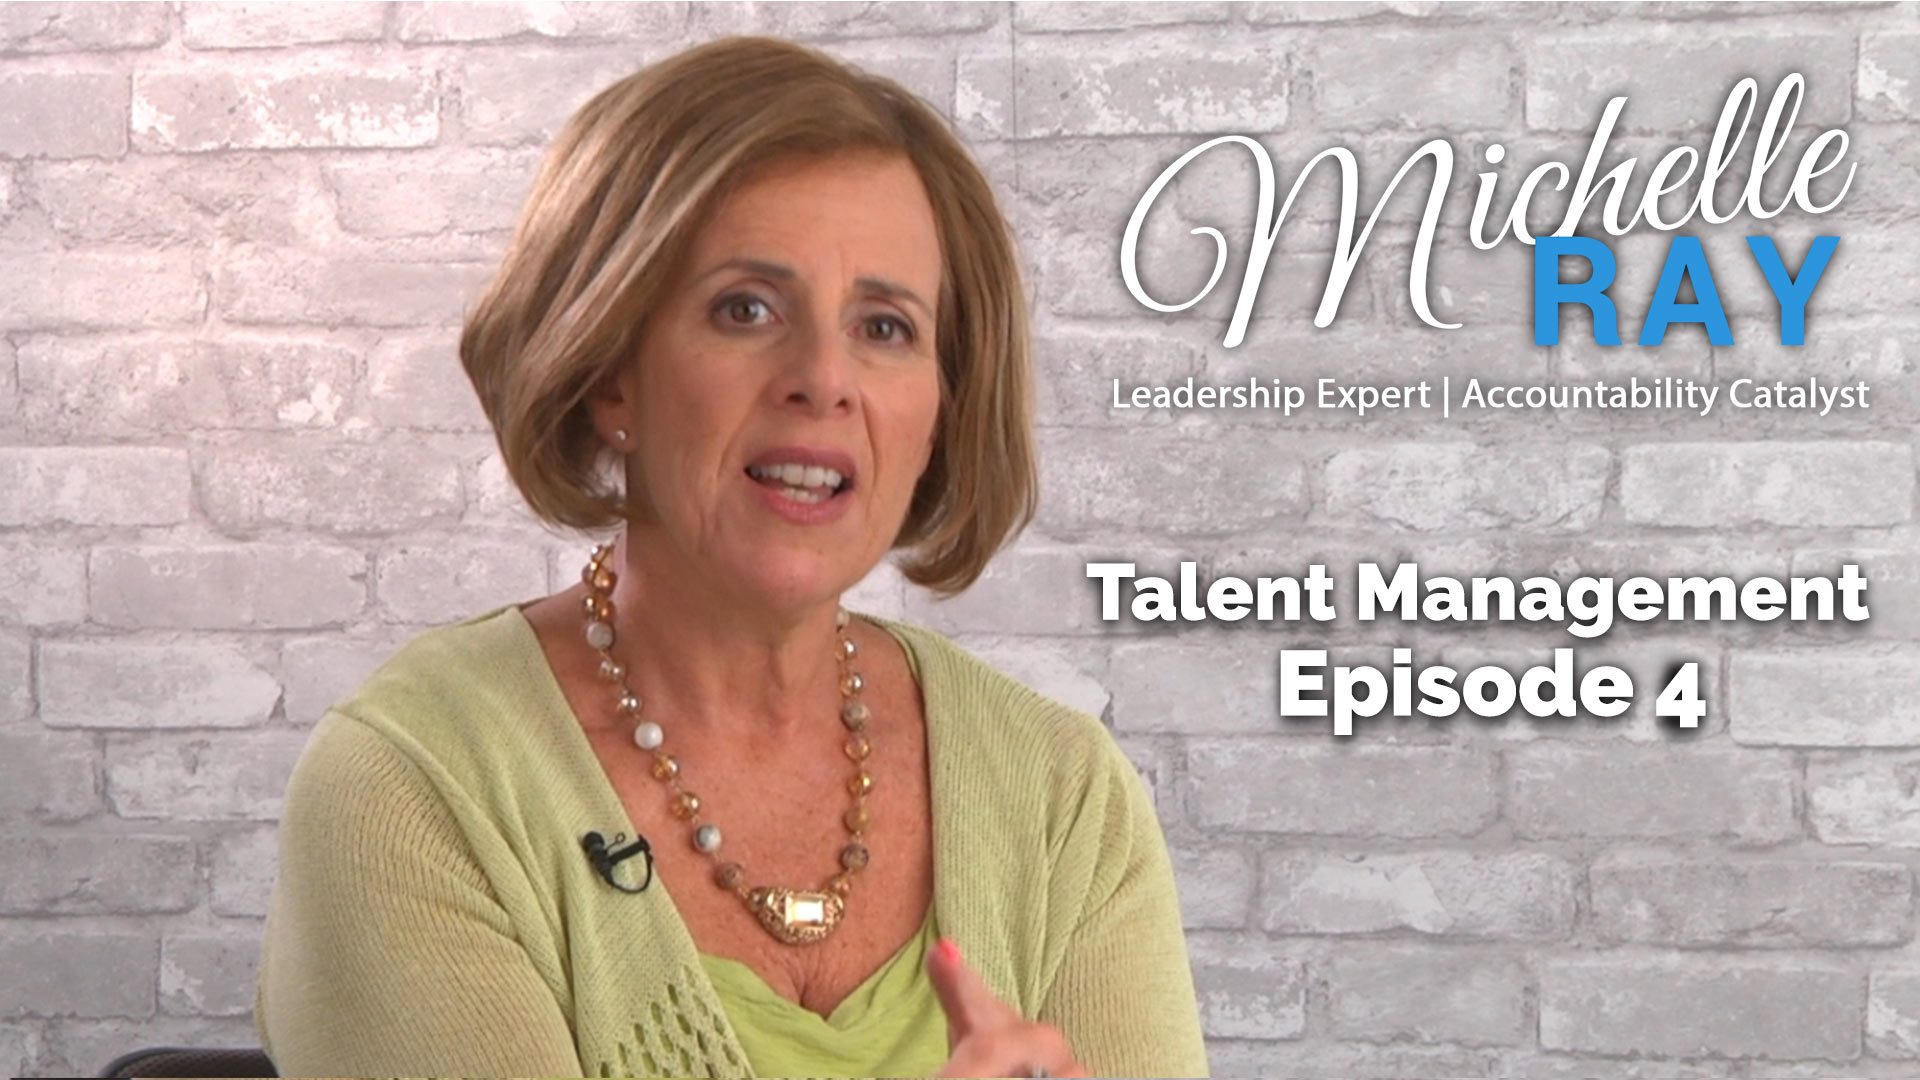 Talent Management and Your Brand